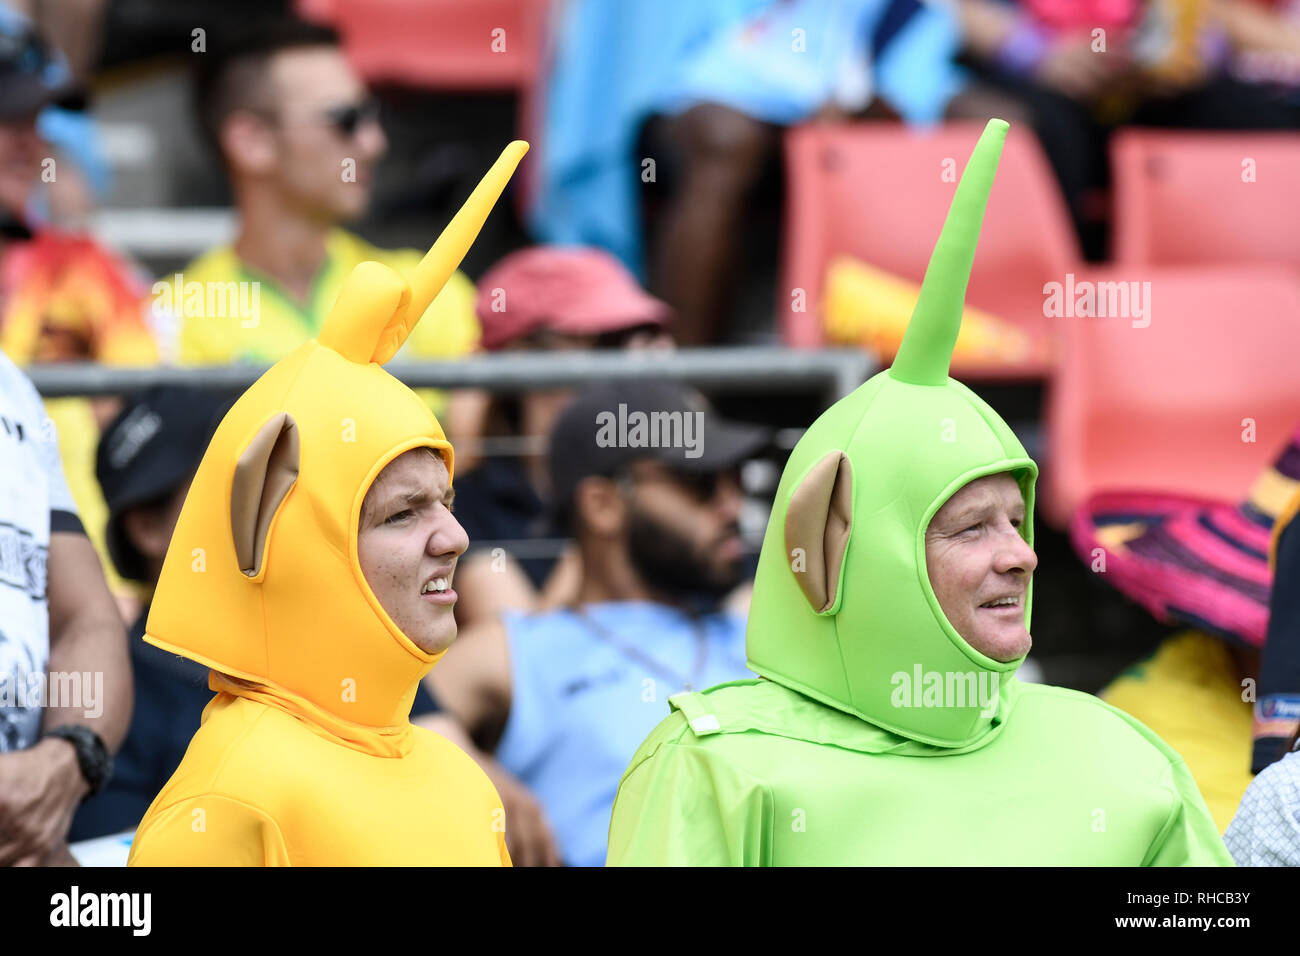 Spotless Stadium, Sydney, Australia. 2nd Feb, 2019. HSBC Sydney Rugby Sevens; fans in fancy dress enjoying the games Credit: Action Plus Sports/Alamy Live News Stock Photo